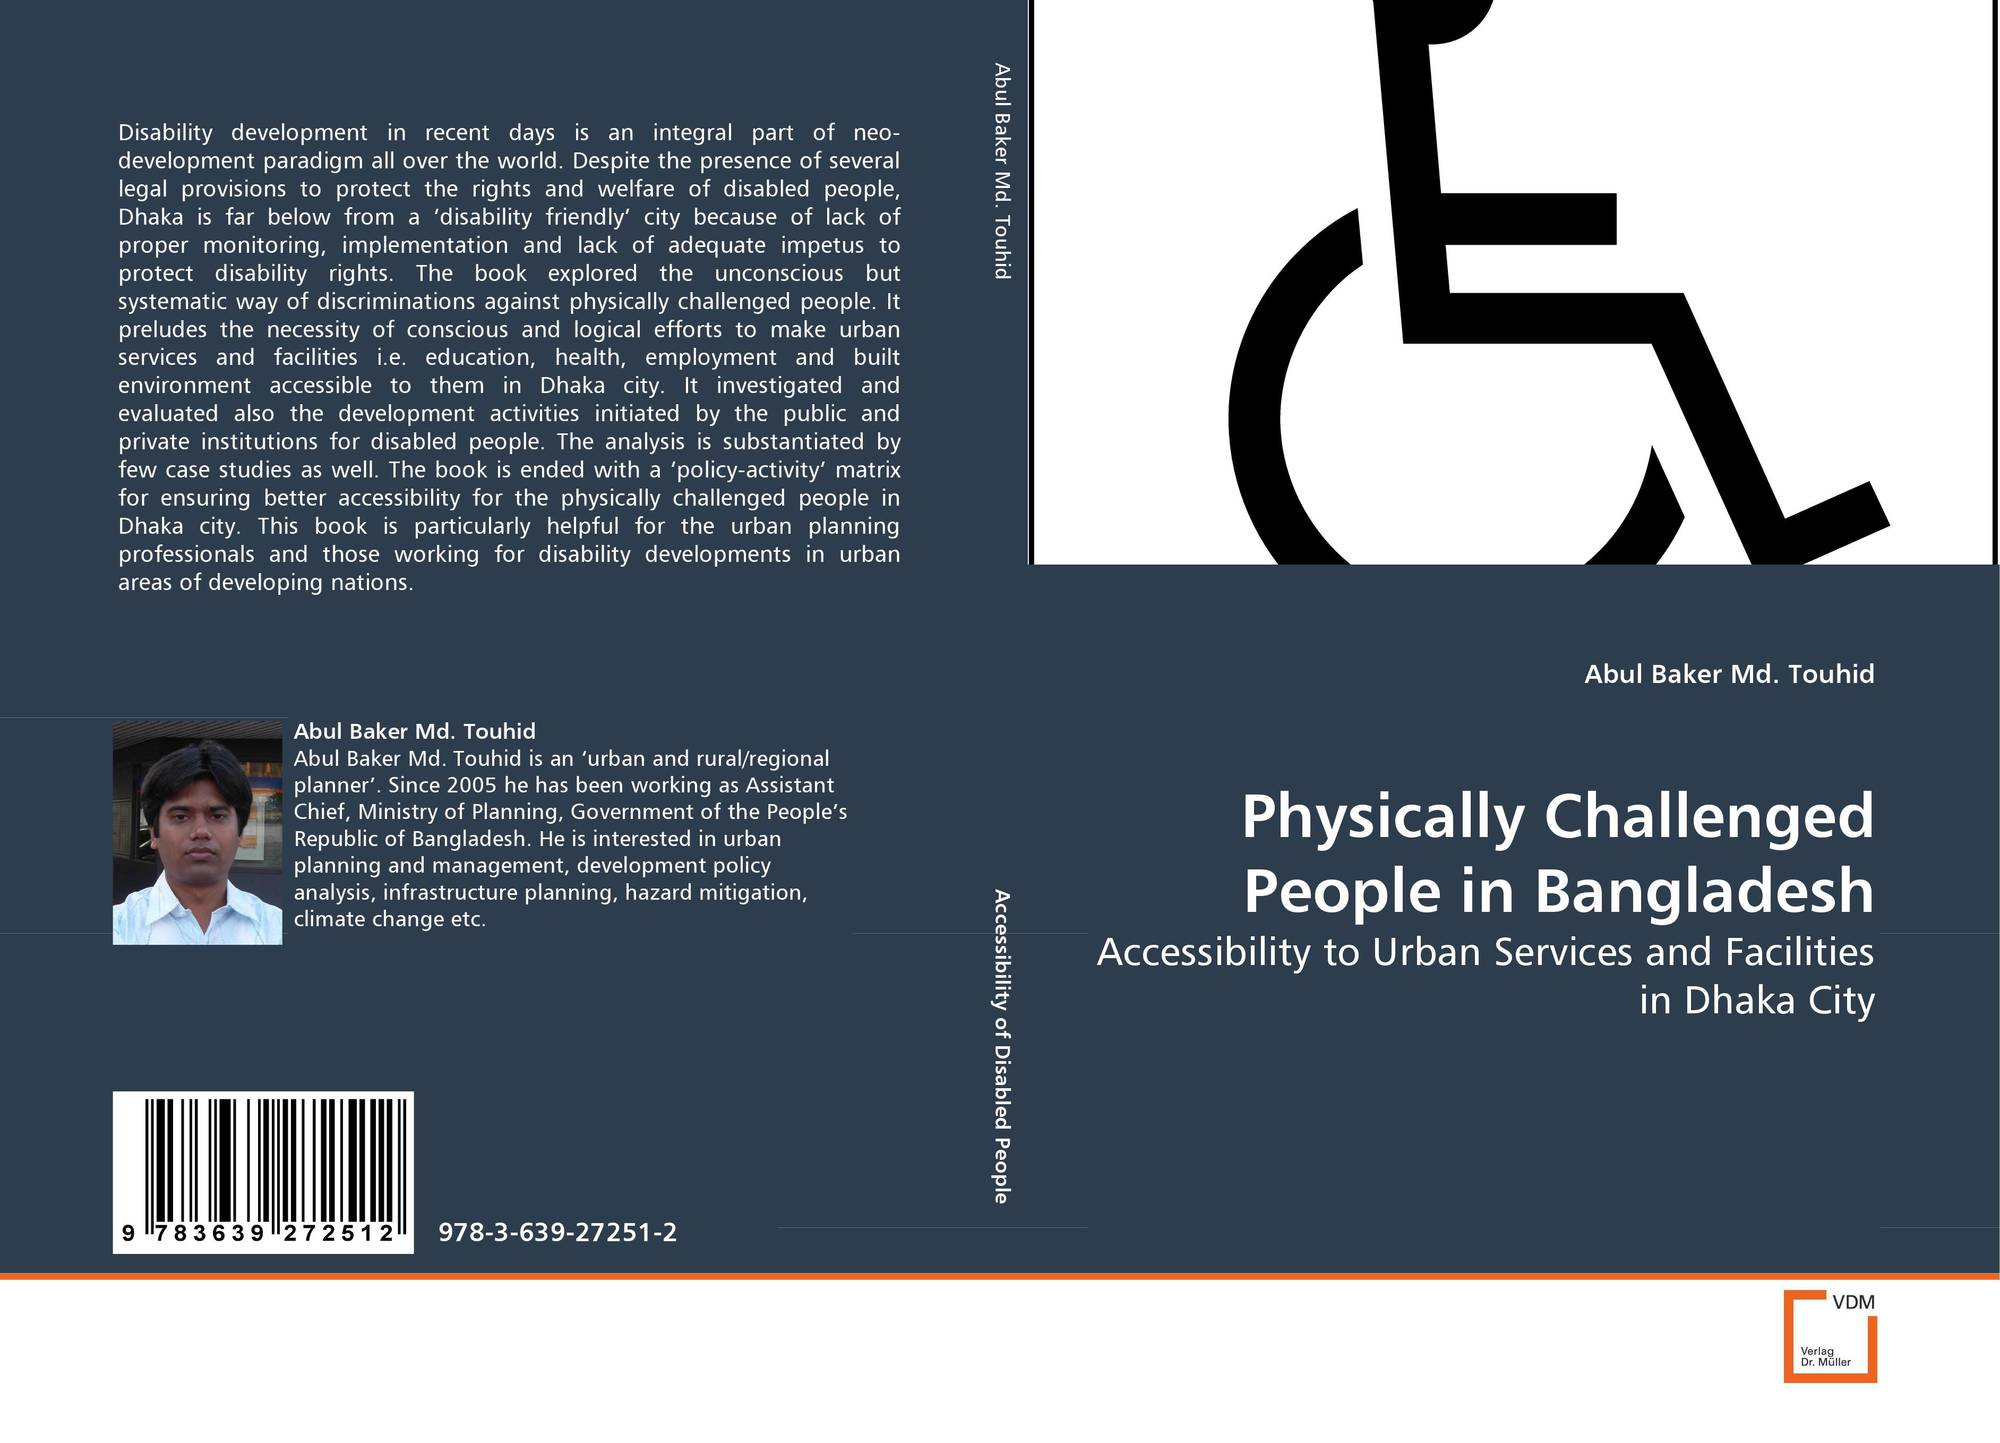 urbanization and infrastructure facilities in bangladesh